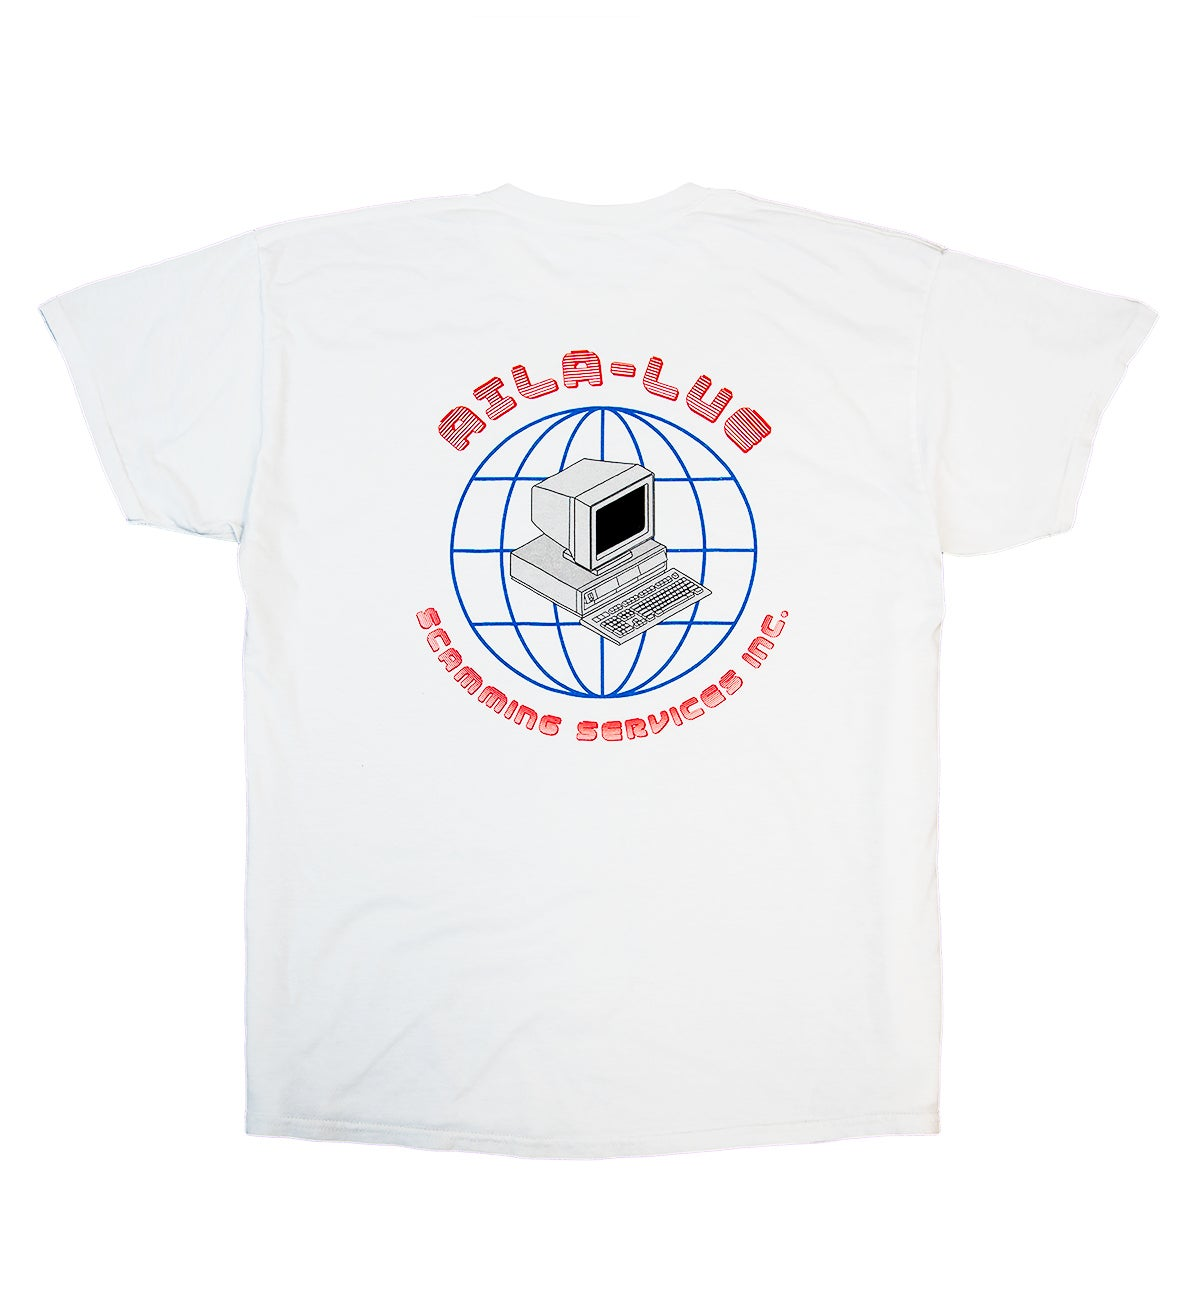 Image of Scamming T-shirt